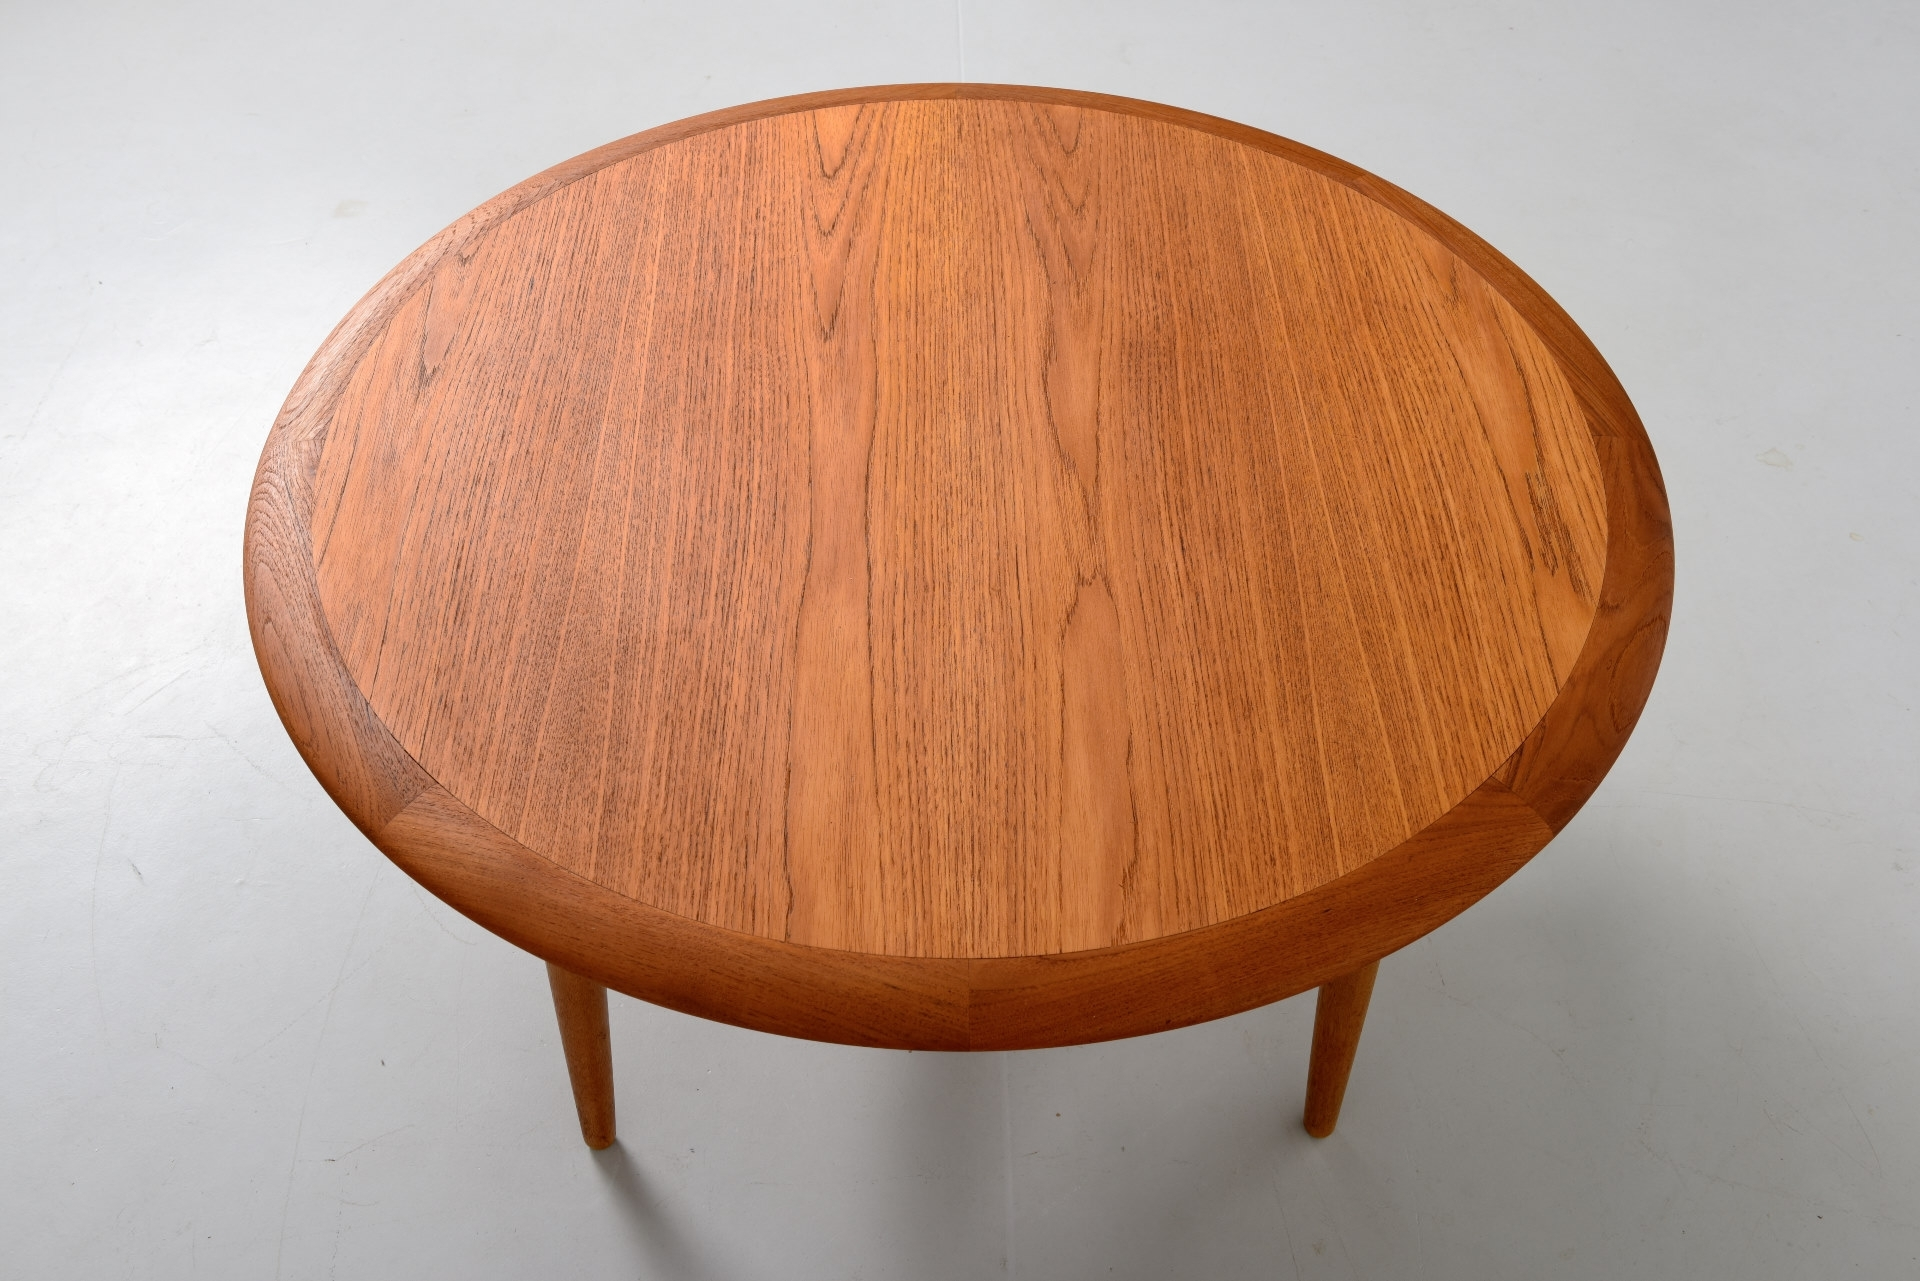 Round Coffee Table In Teak With Rattan Shelf | Modestfurniture intended for Round Teak Coffee Tables (Image 19 of 30)